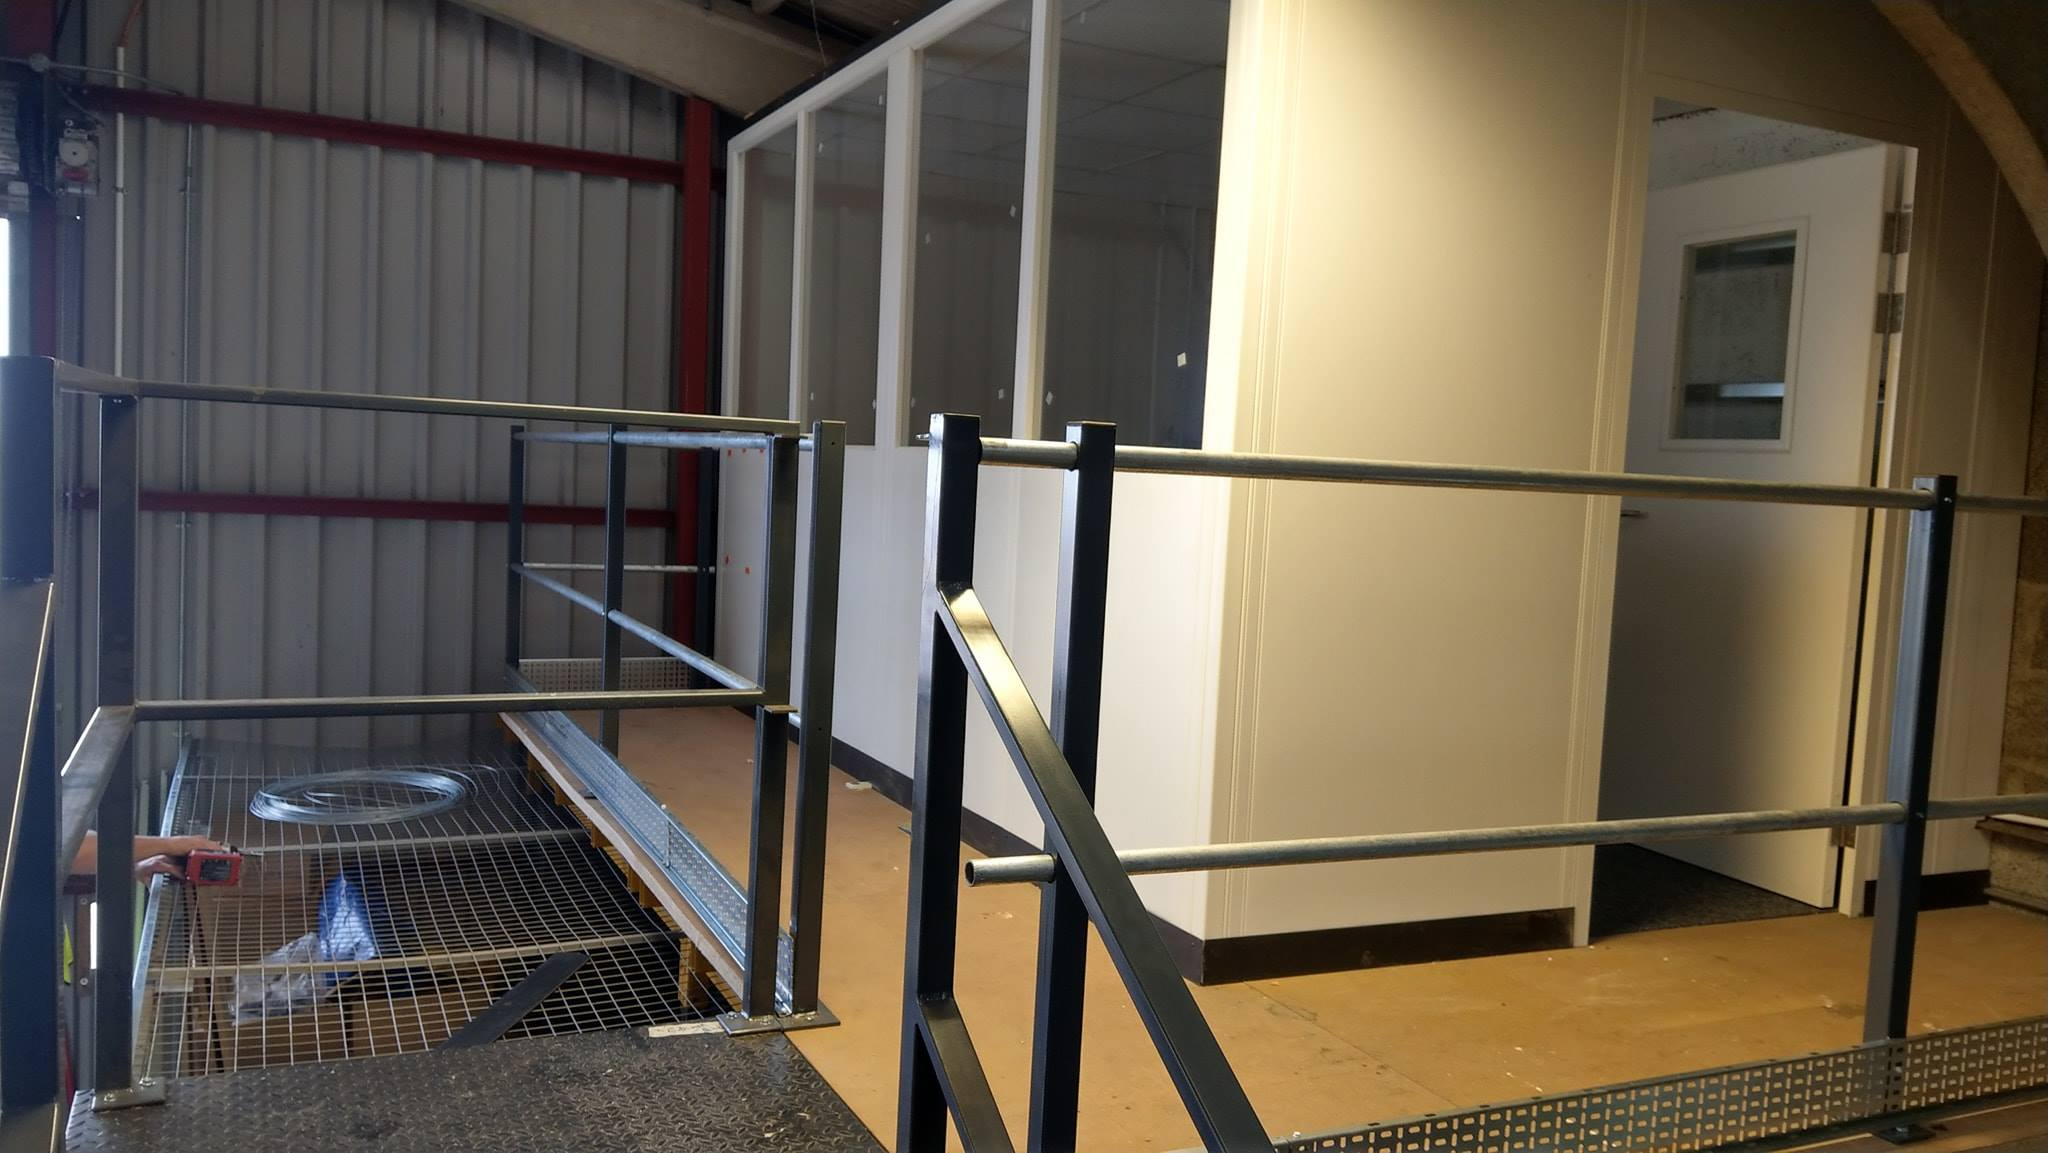 If you need a back office we have a modular solution. Designed and installed by BTS Storage Centre